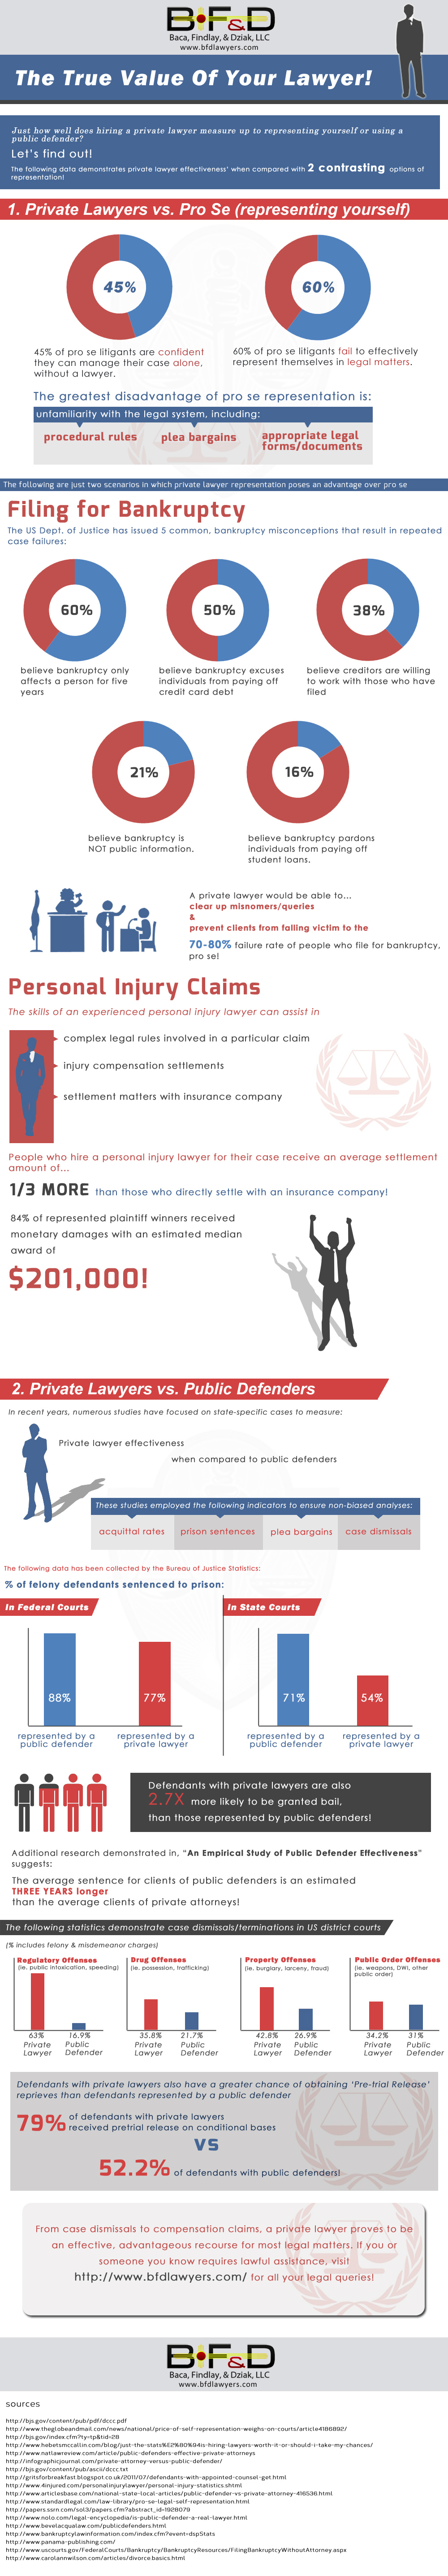 The value of a lawyer